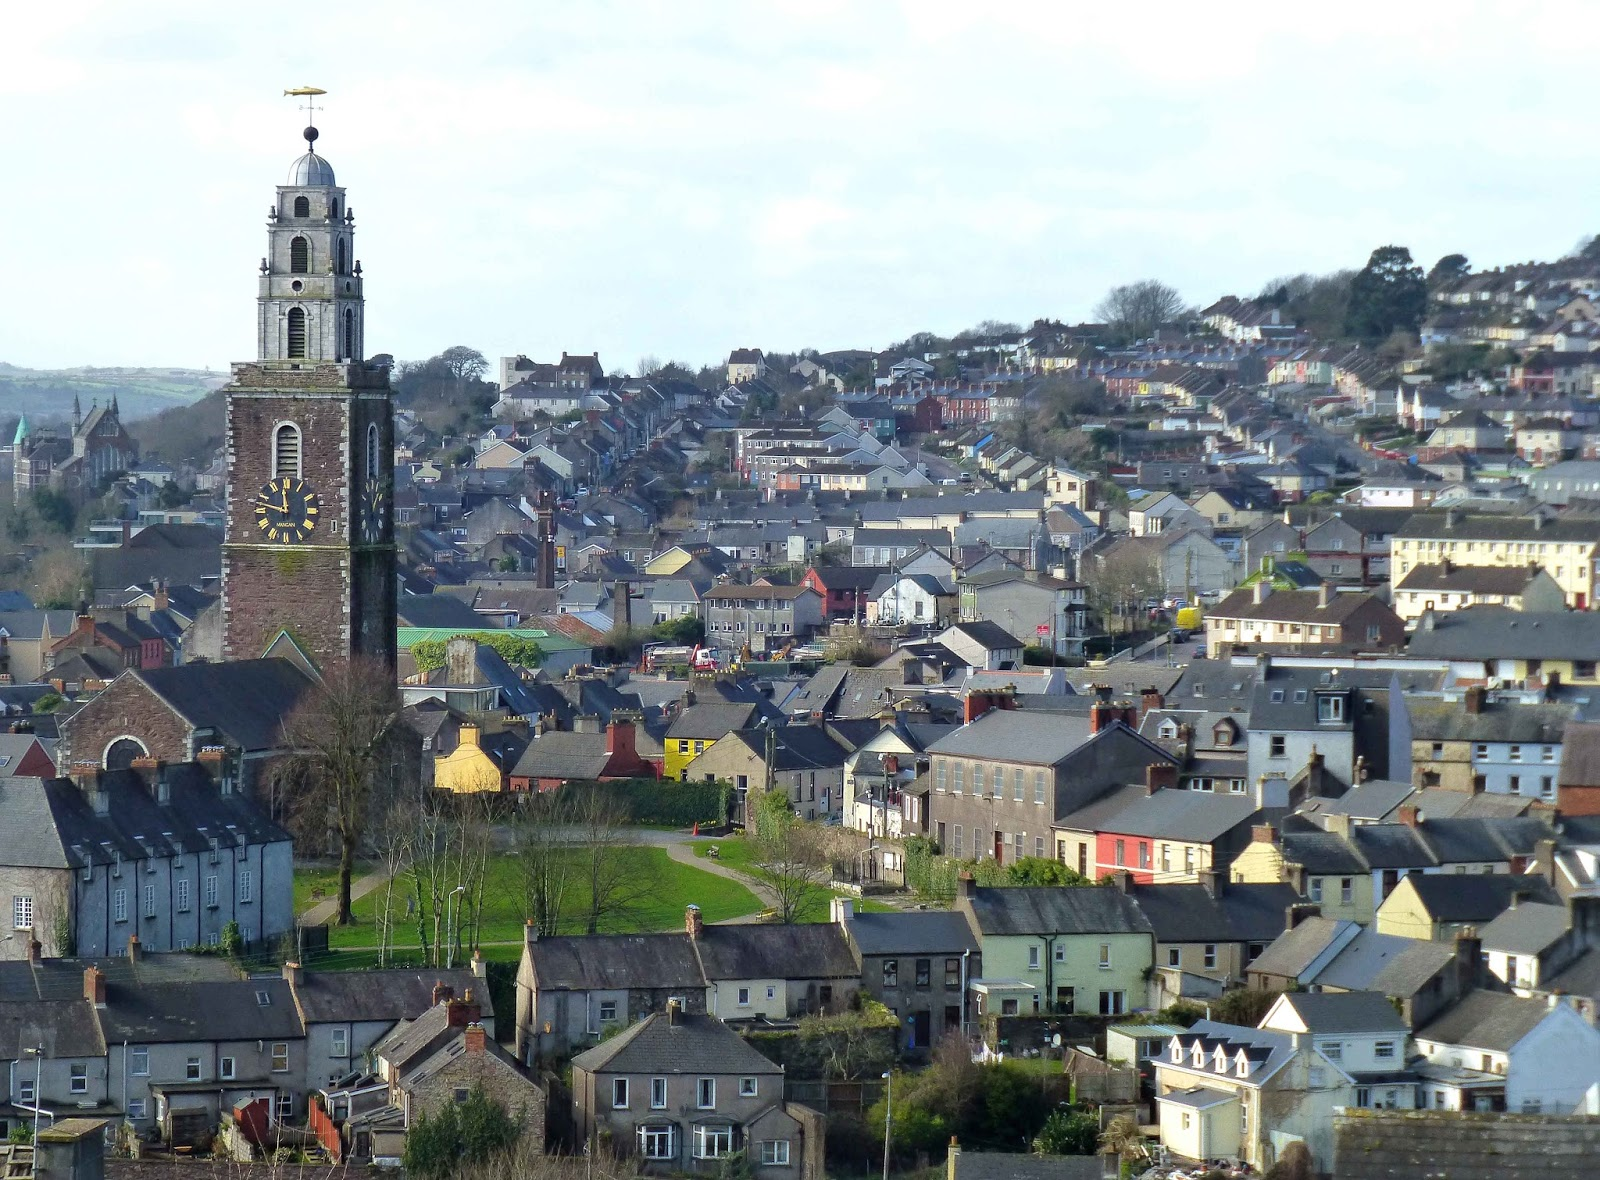 CORKABOUT: Yesterday On The Old Youghal Road  A Long City Walk